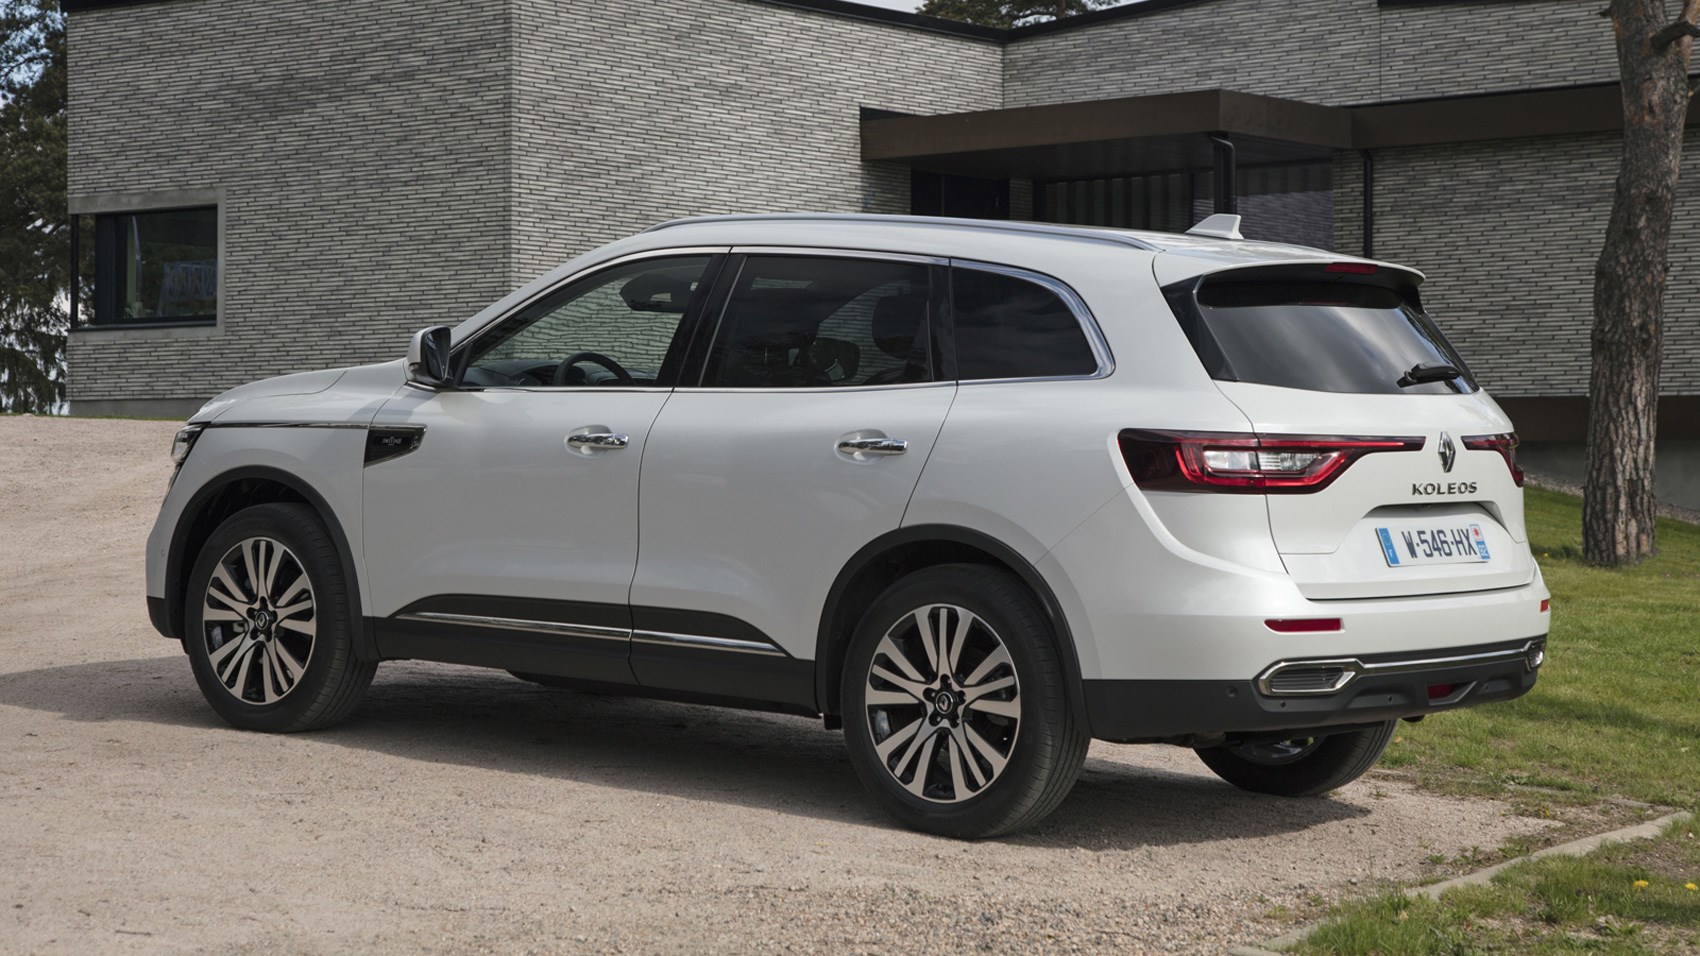 0 Down Lease Deals >> Renault Koleos (2017) review | CAR Magazine